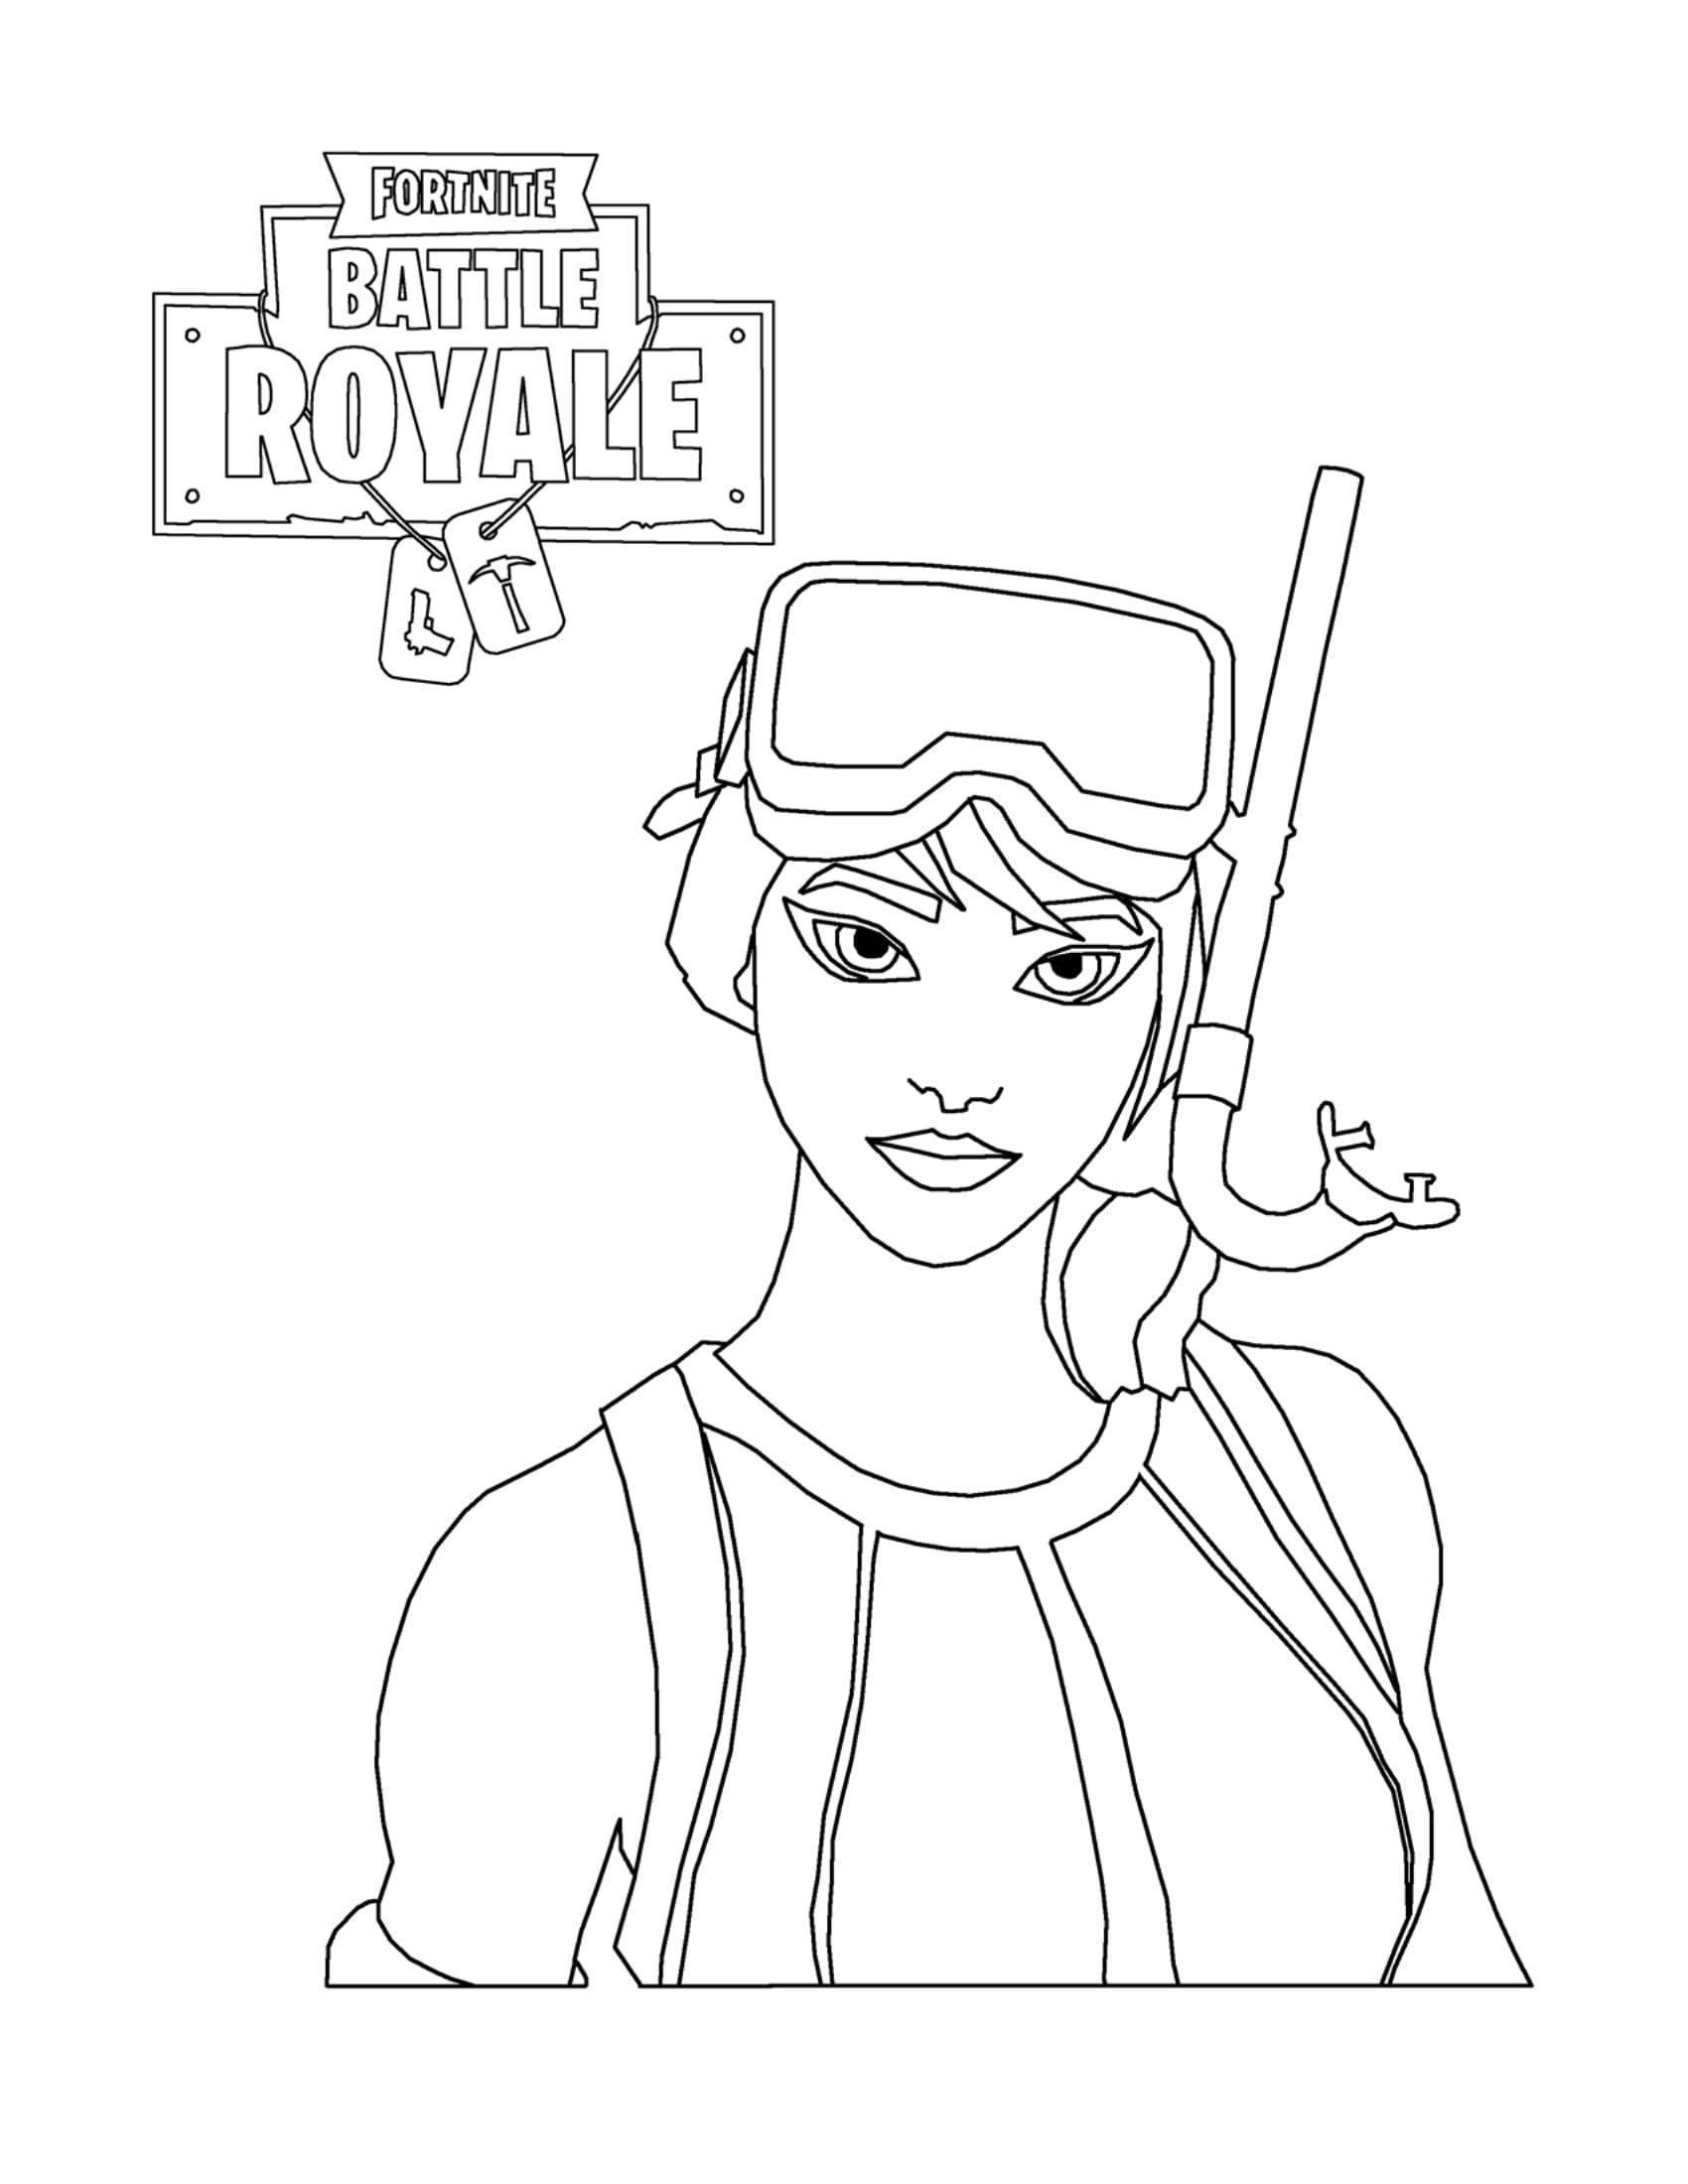 New Fortnite Skin Coloring Pages Character Drawing ...